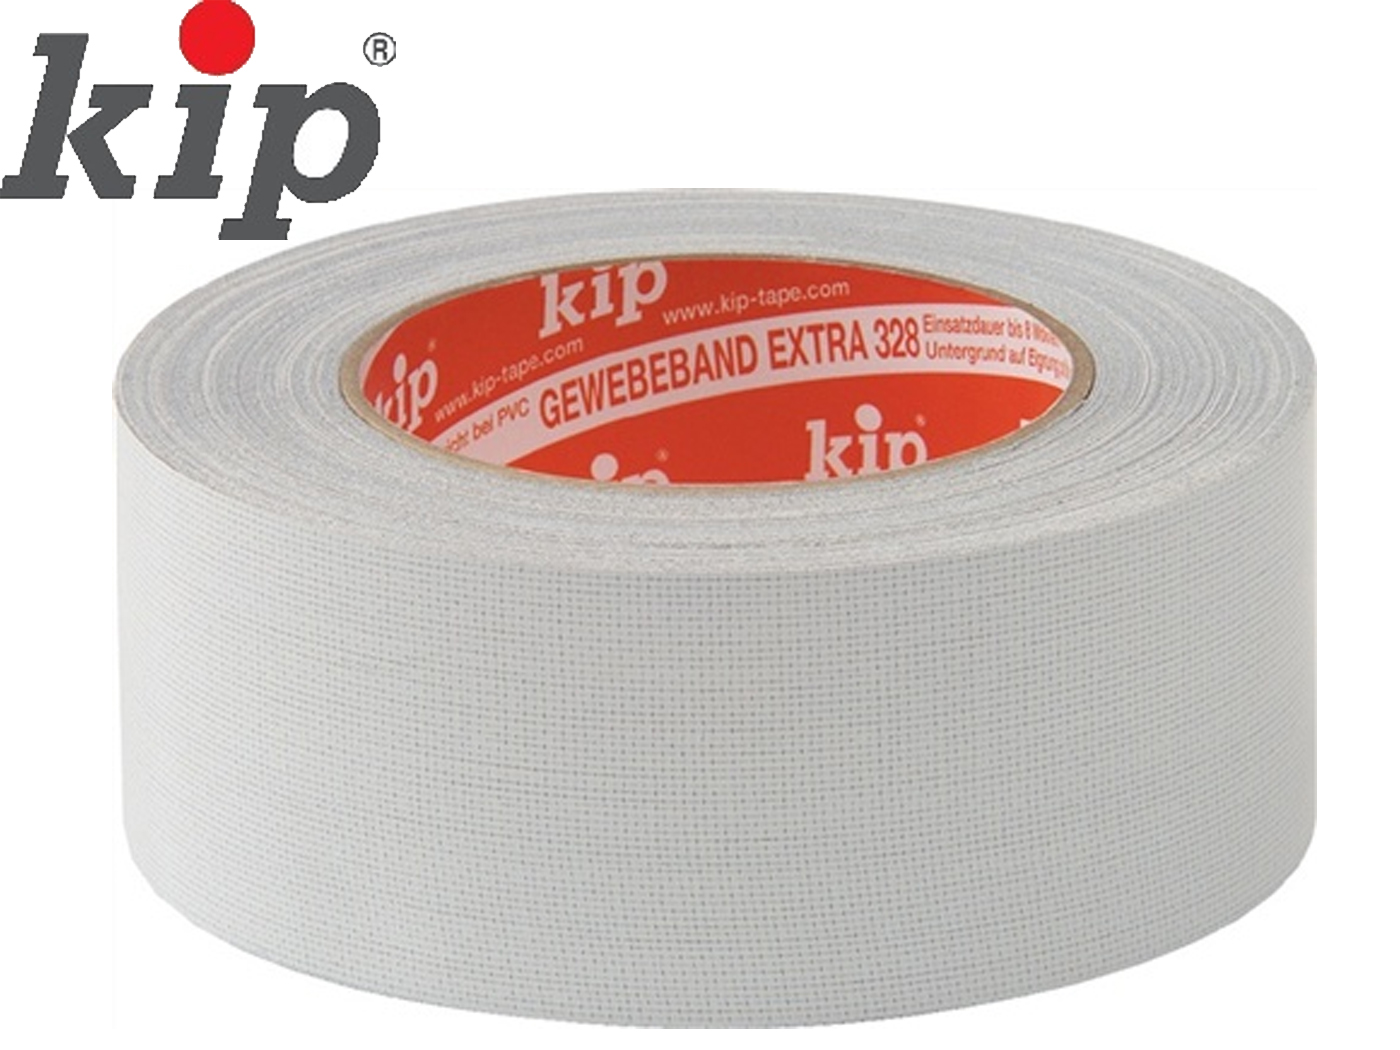 Weefselplakband 25mm breed Kip | DKMTools - DKM Tools